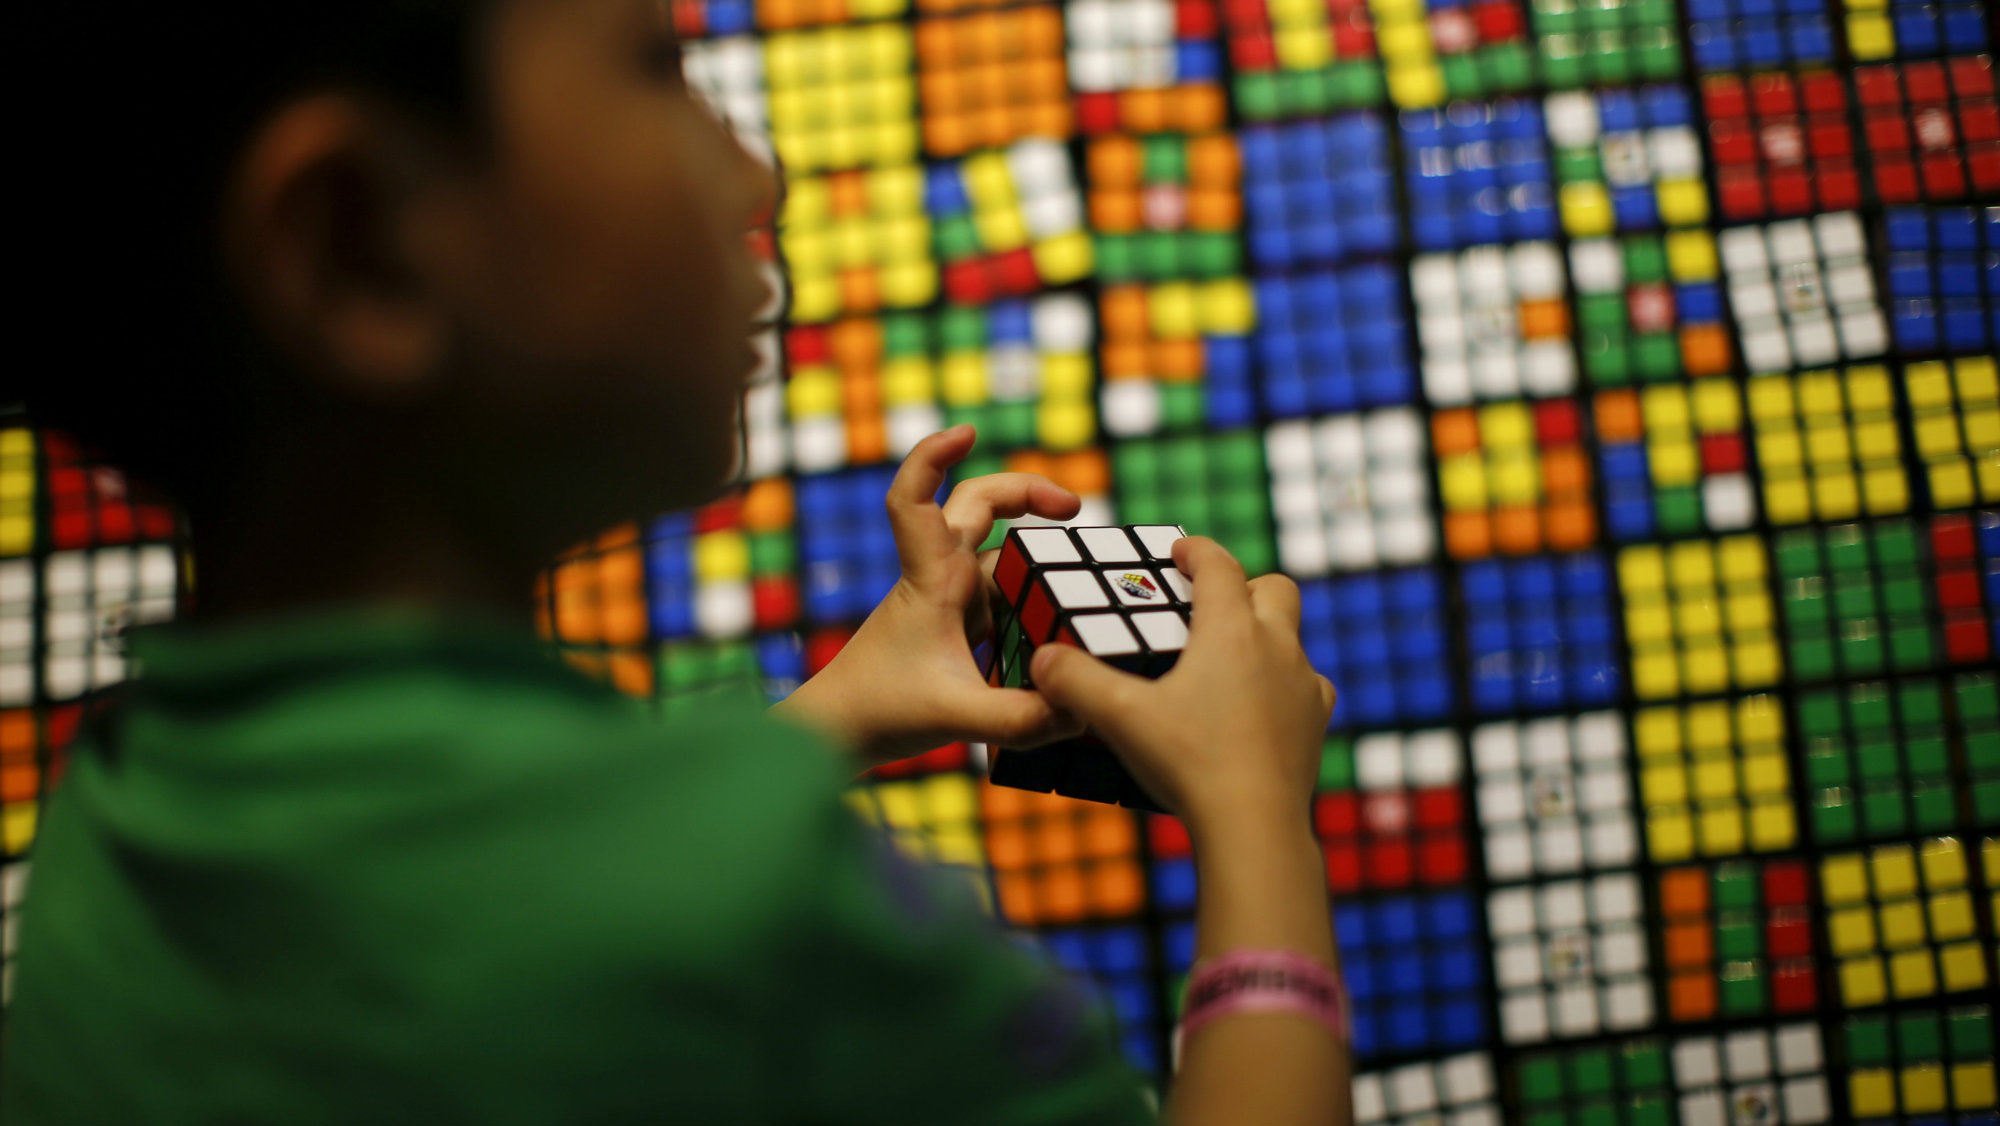 A boy plays with the Rubik's cube during an event to mark the 40th anniversary of the puzzle toy at the Liberty Science Center in Jersey City, New Jersey, April 26, 2014.